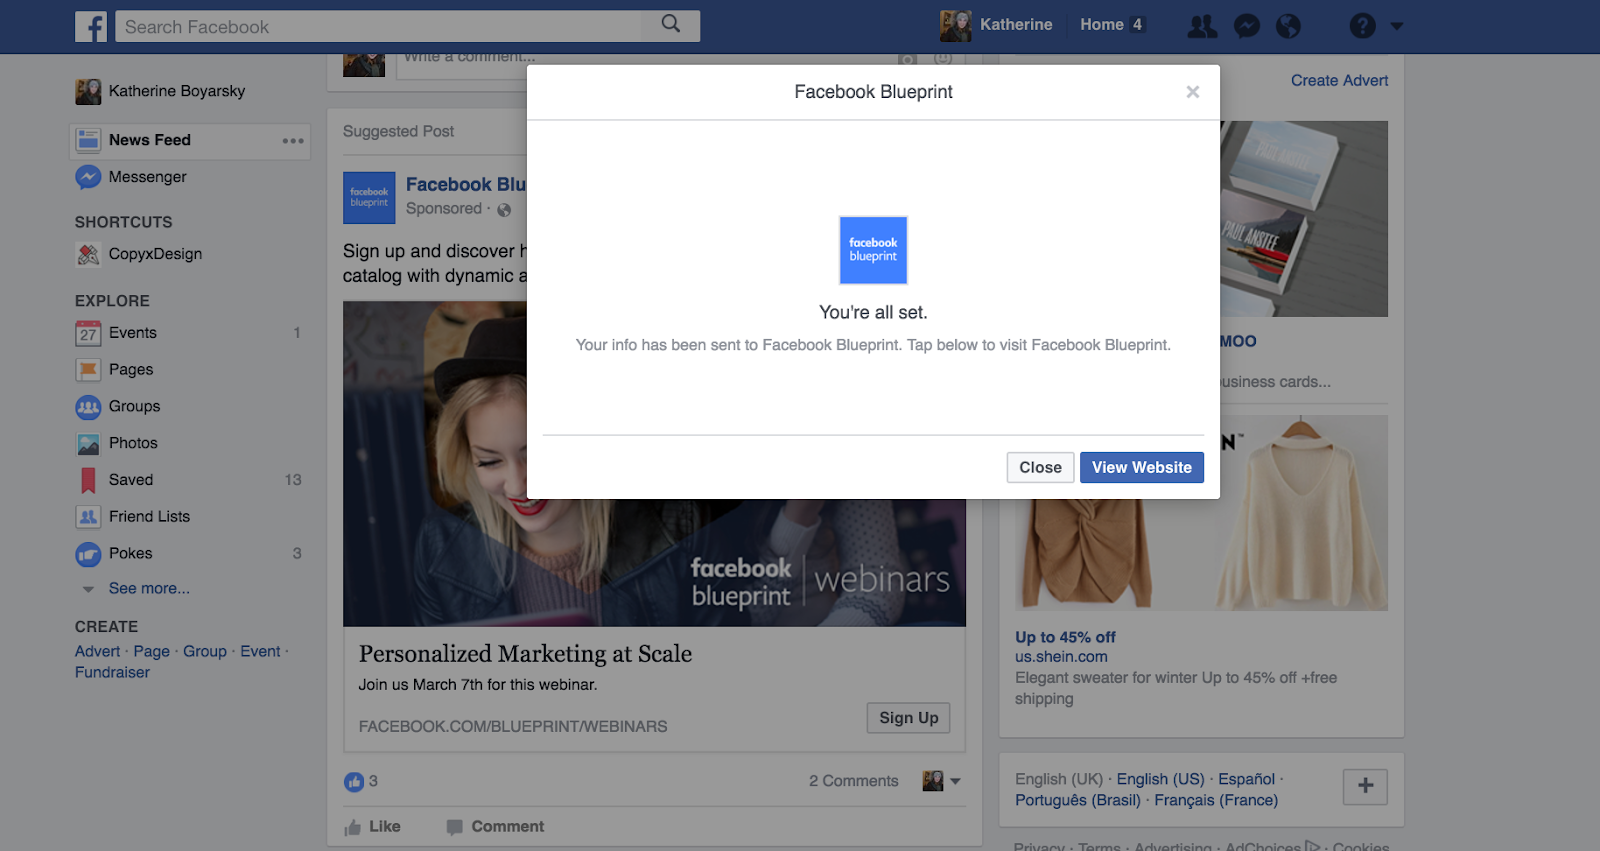 Facebook Leads Ads: How to Use Facebook Lead Ads to Grow